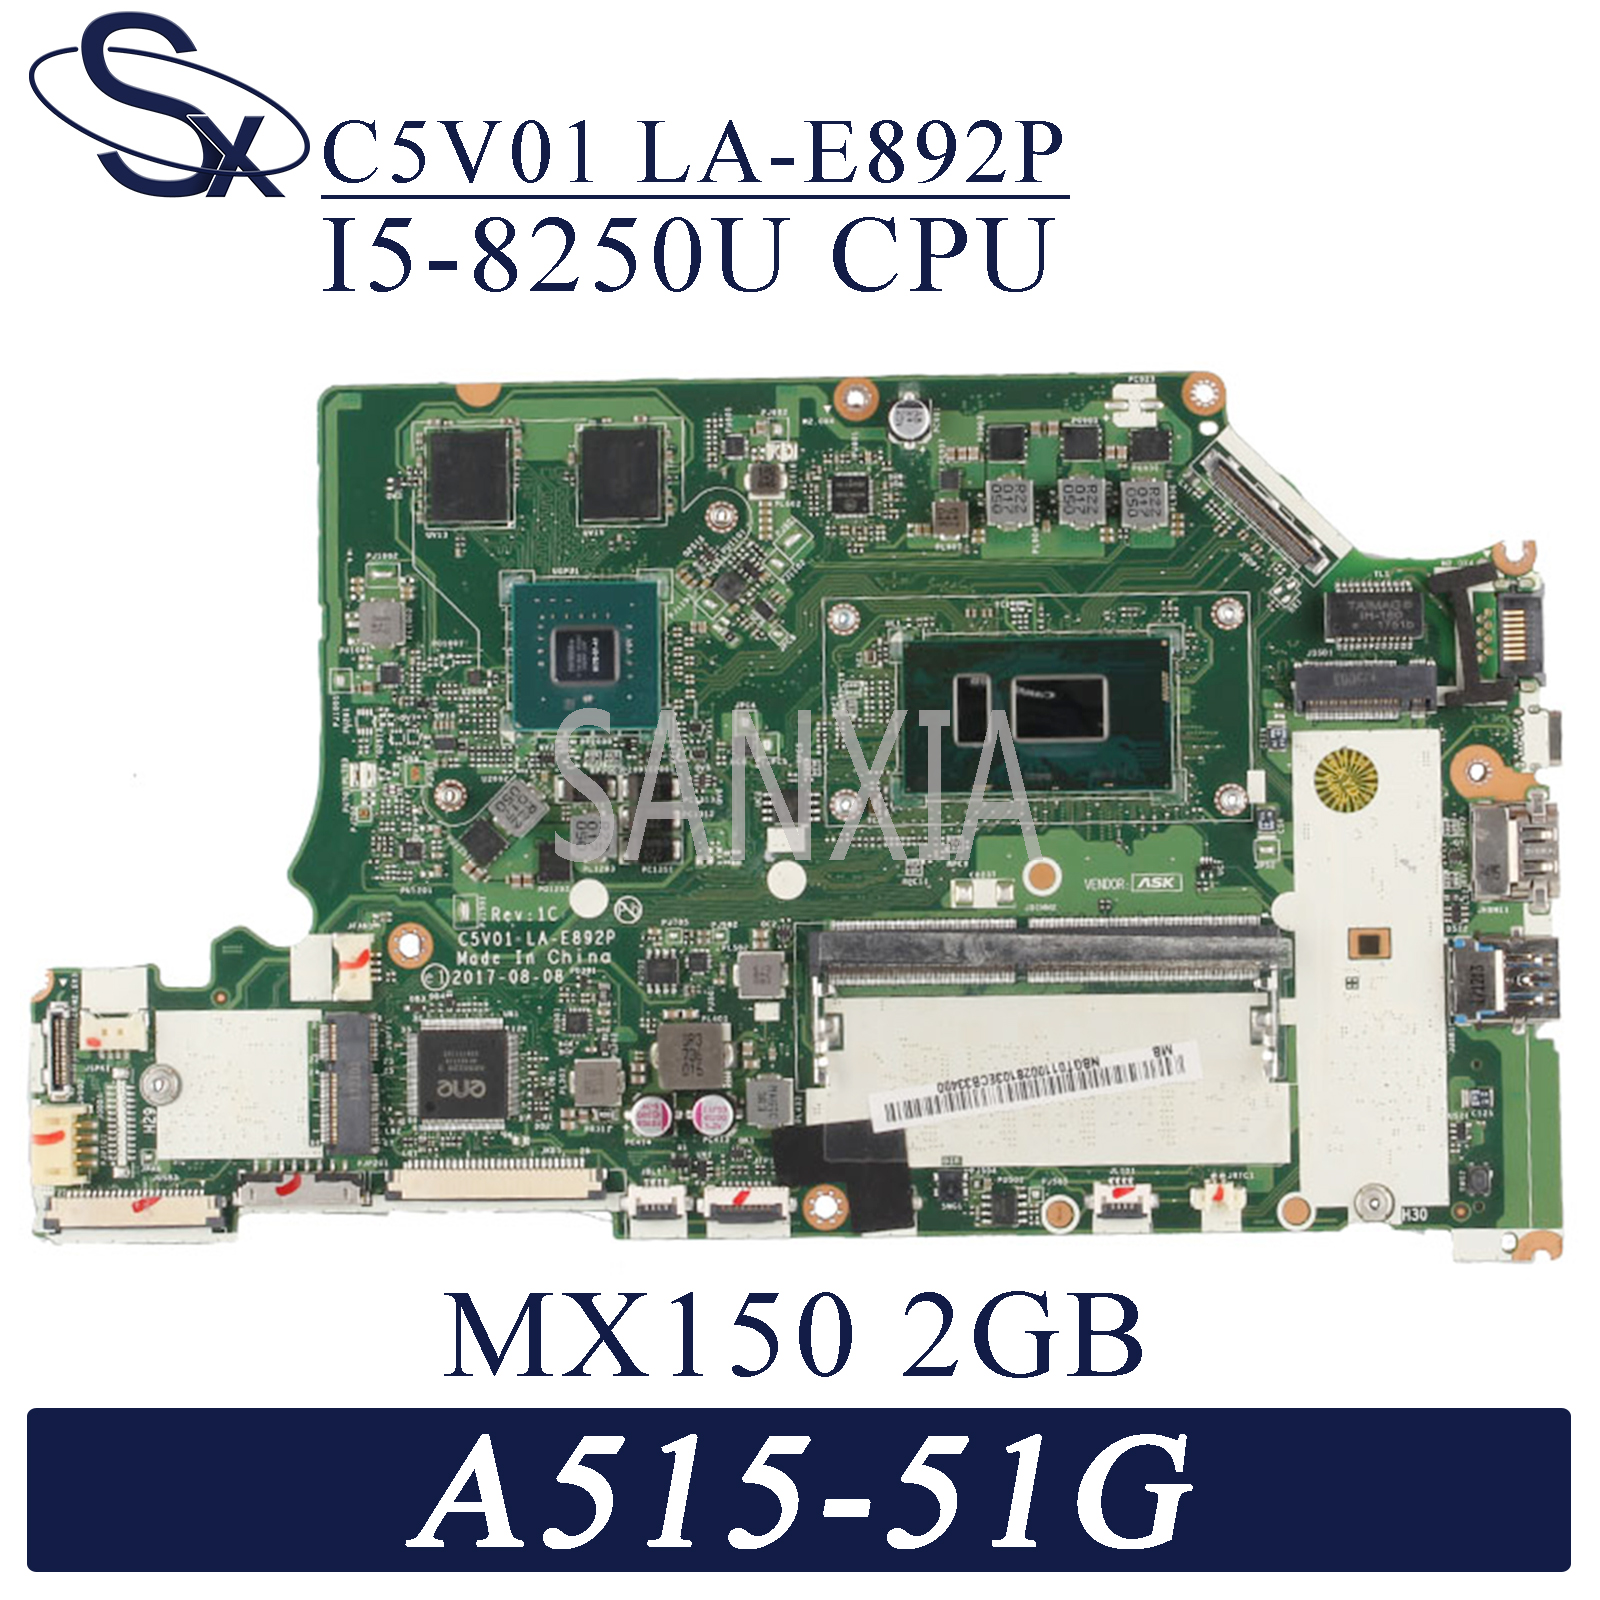 KEFU LA-E892P <font><b>Laptop</b></font> motherboard for Acer A515-51G A615-51G original mainboard Onboard 4GB-RAM I5-8250U <font><b>MX150</b></font>-2GB image